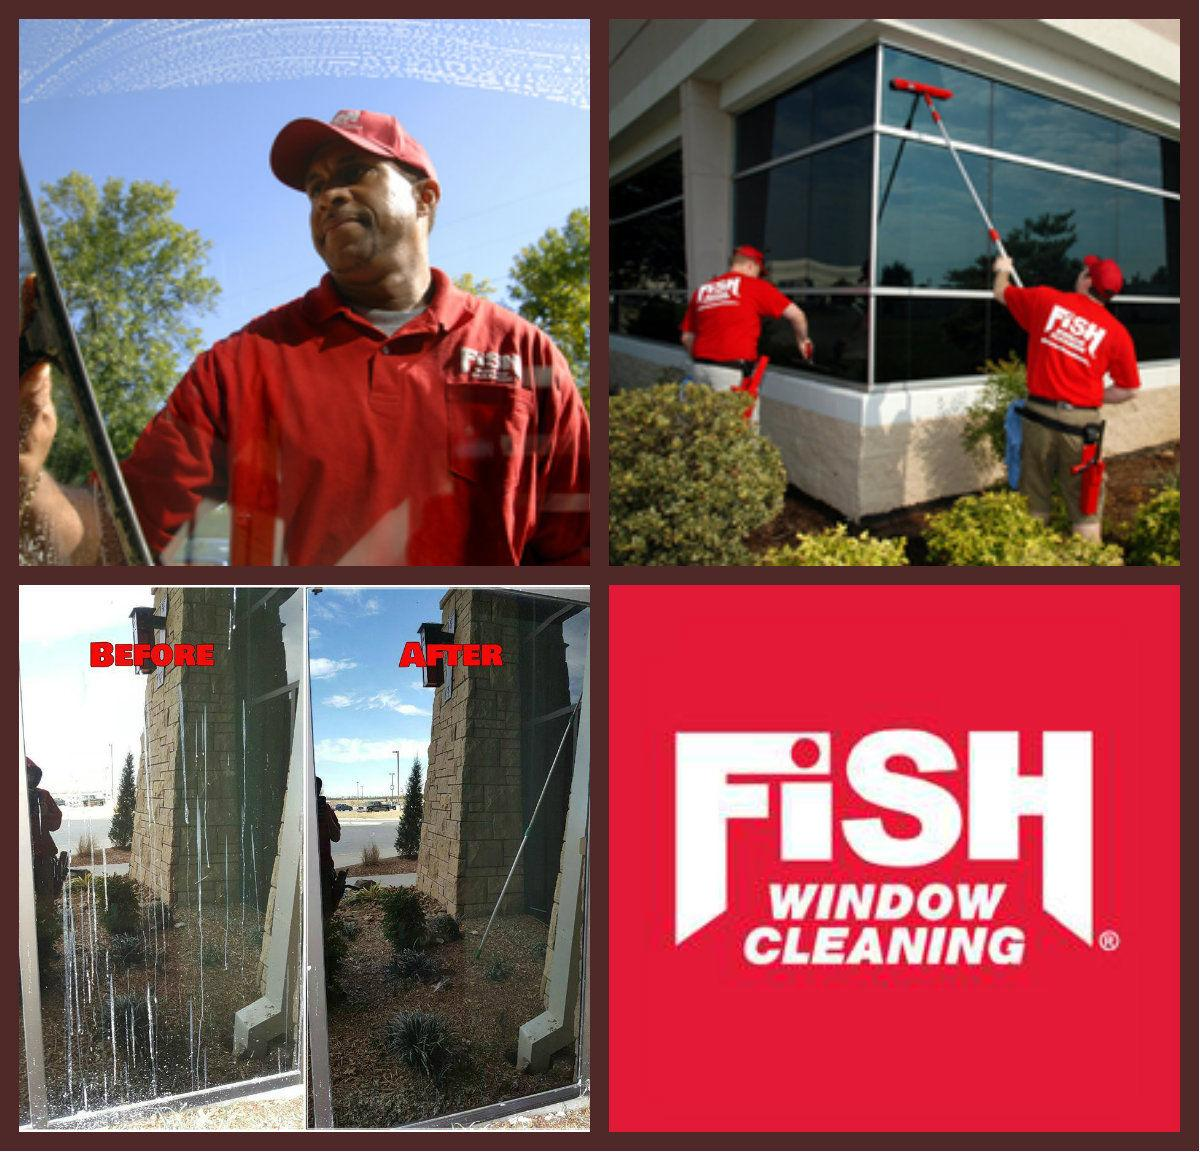 Fish window cleaning cleaning ground level storefronts for Fish window cleaning